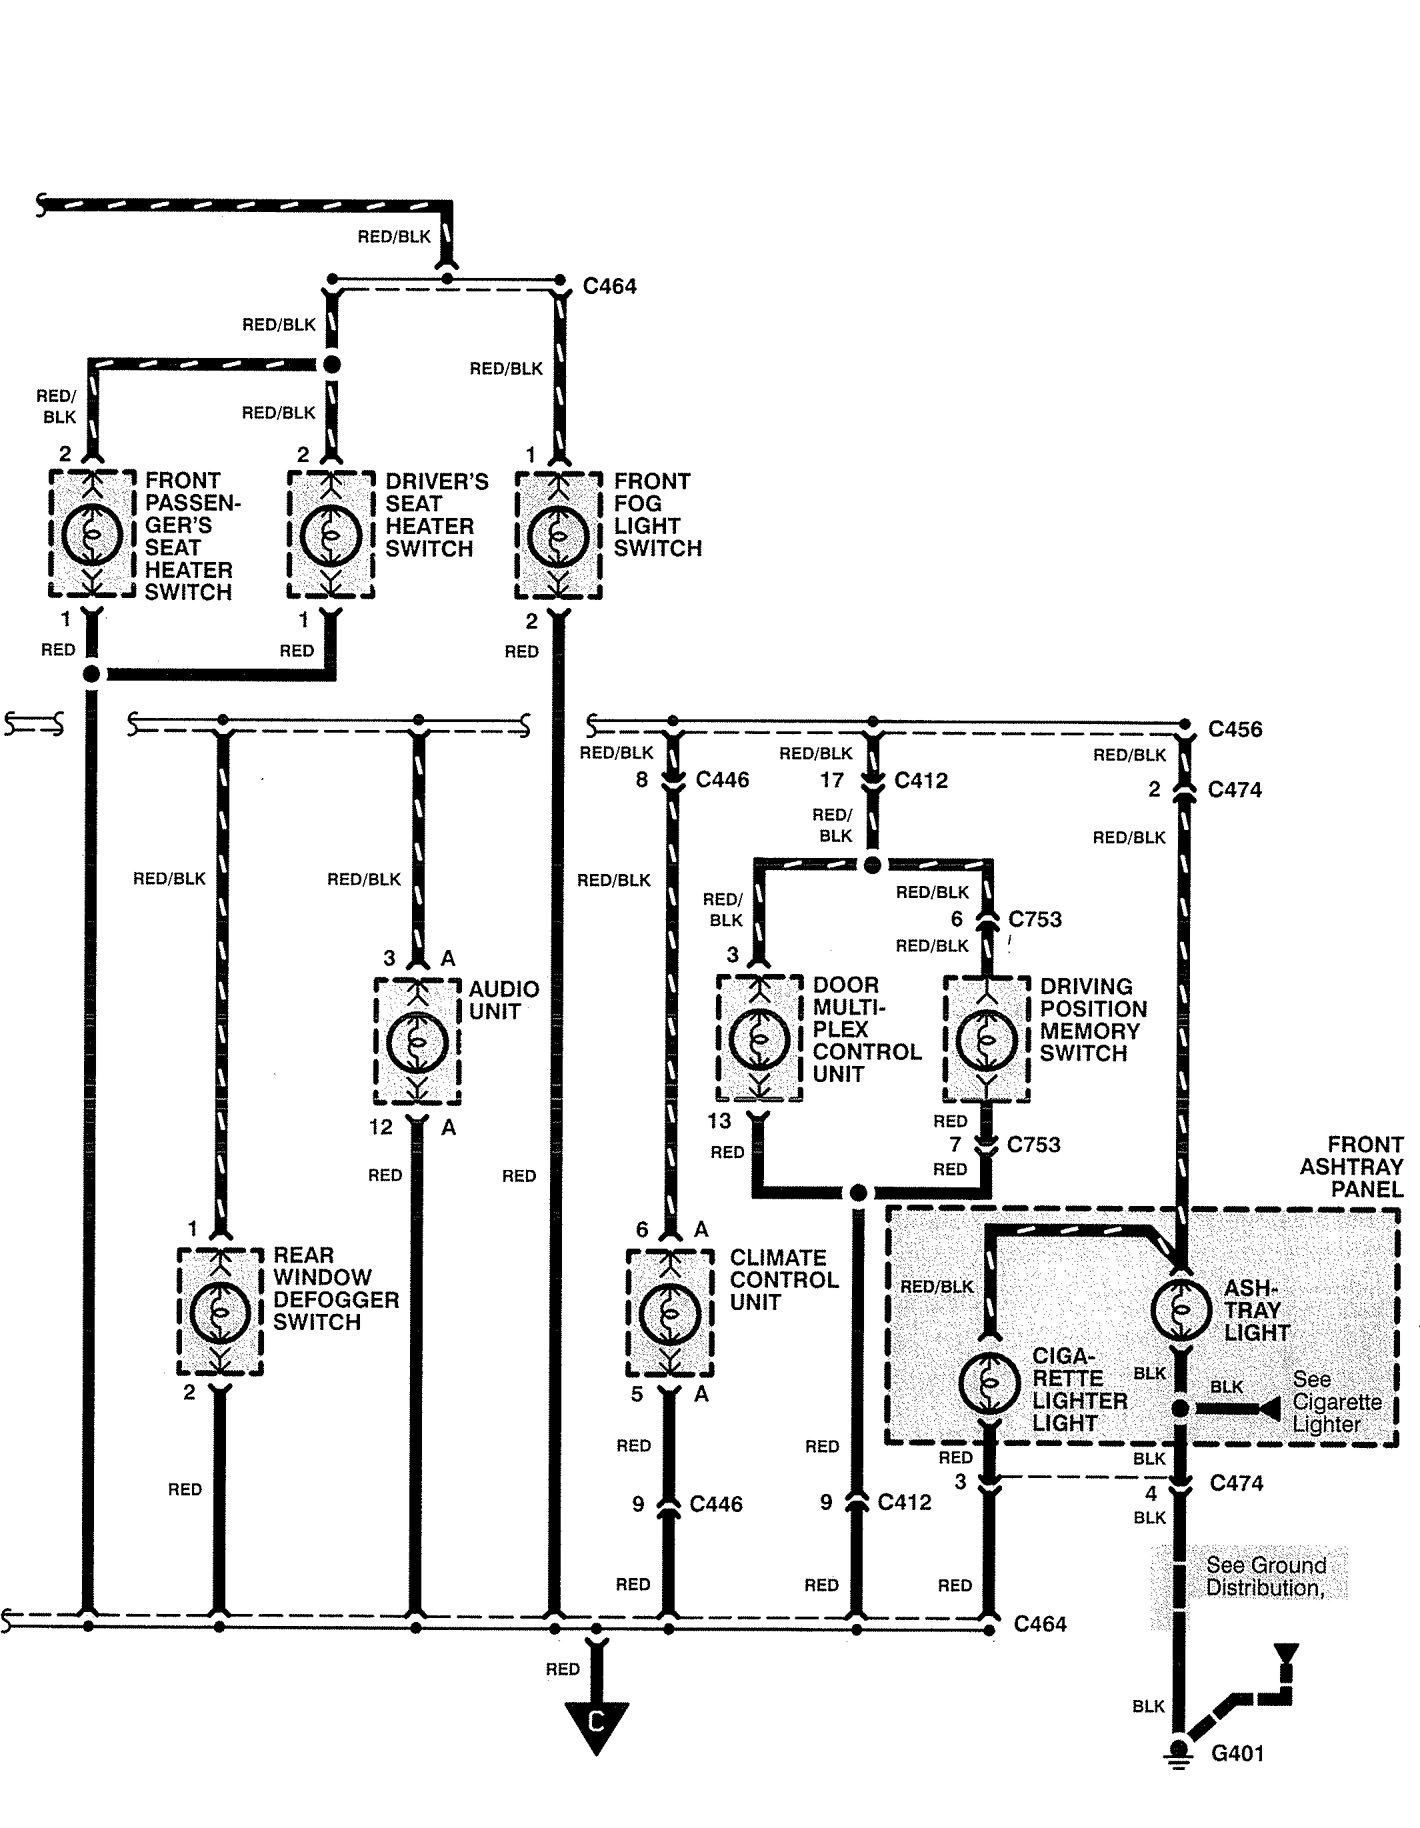 mius_9060] 1991 geo storm wiring diagram download wiring diagram -  cousindiagram.lafabricadechocolate.es  diagram database website full edition - lafabricadechocolate.es